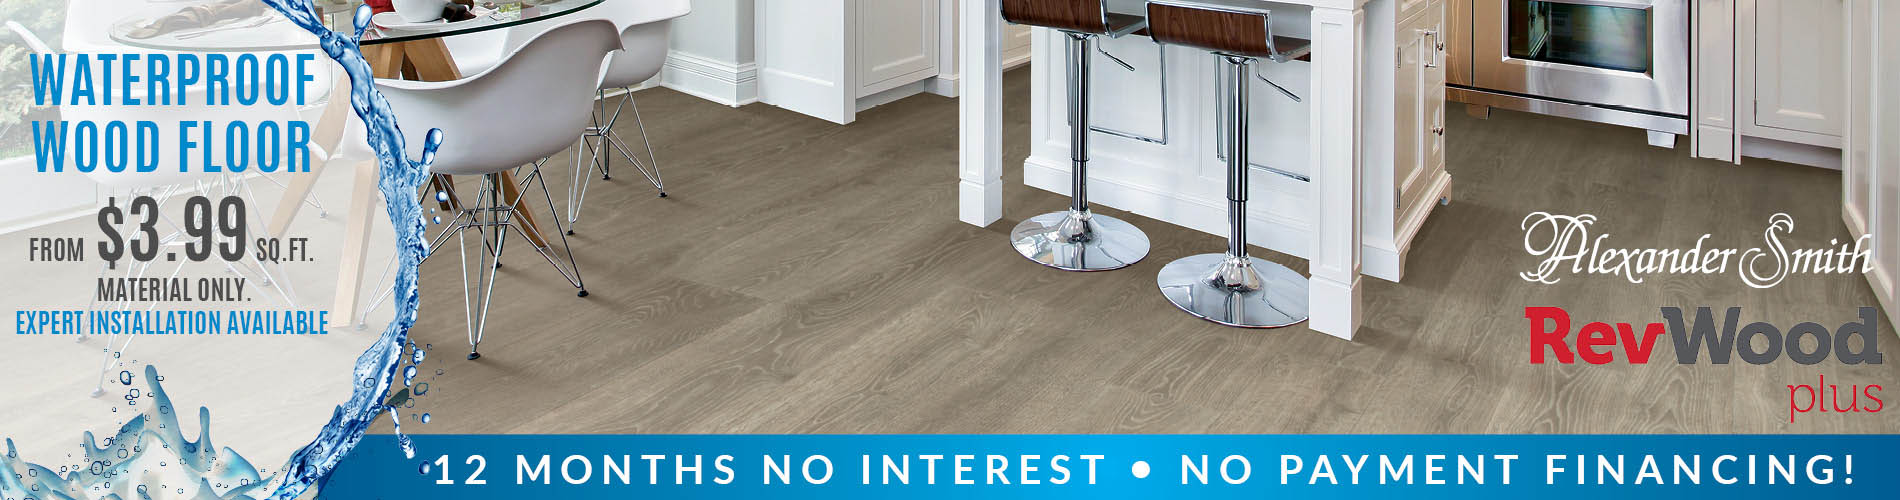 Alexander Smith RevWood Plus waterproof wood-look floor starting st $3.99 sq.ft. (material only) with expert installation available and 12 month, no interest, no payment financing!